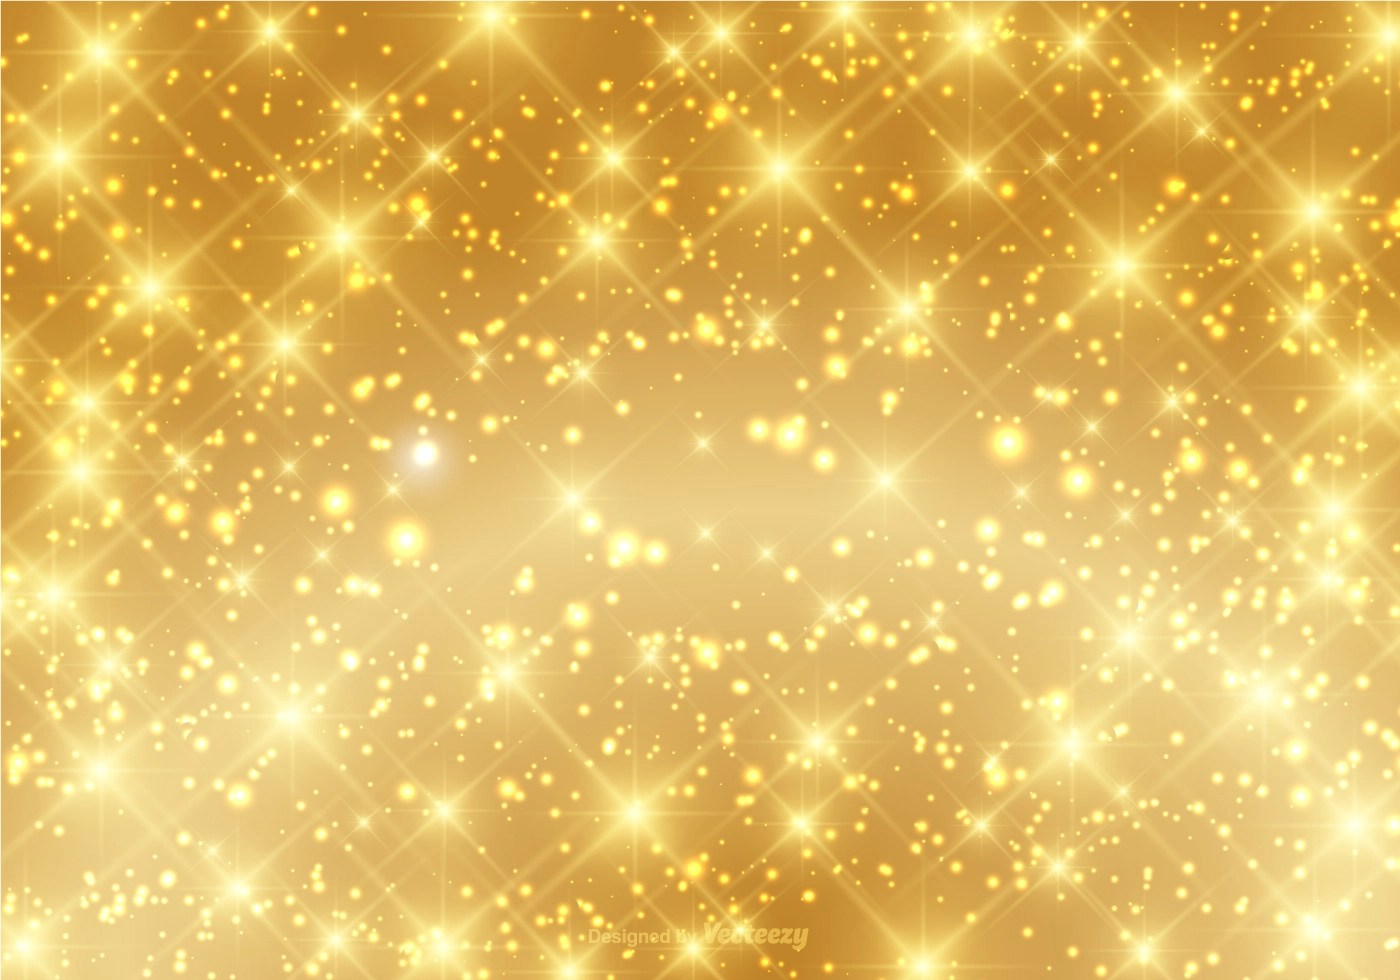 Beautiful Gold Sparkle Background Vector  Download Free Vector Art Stock Graphics  Images